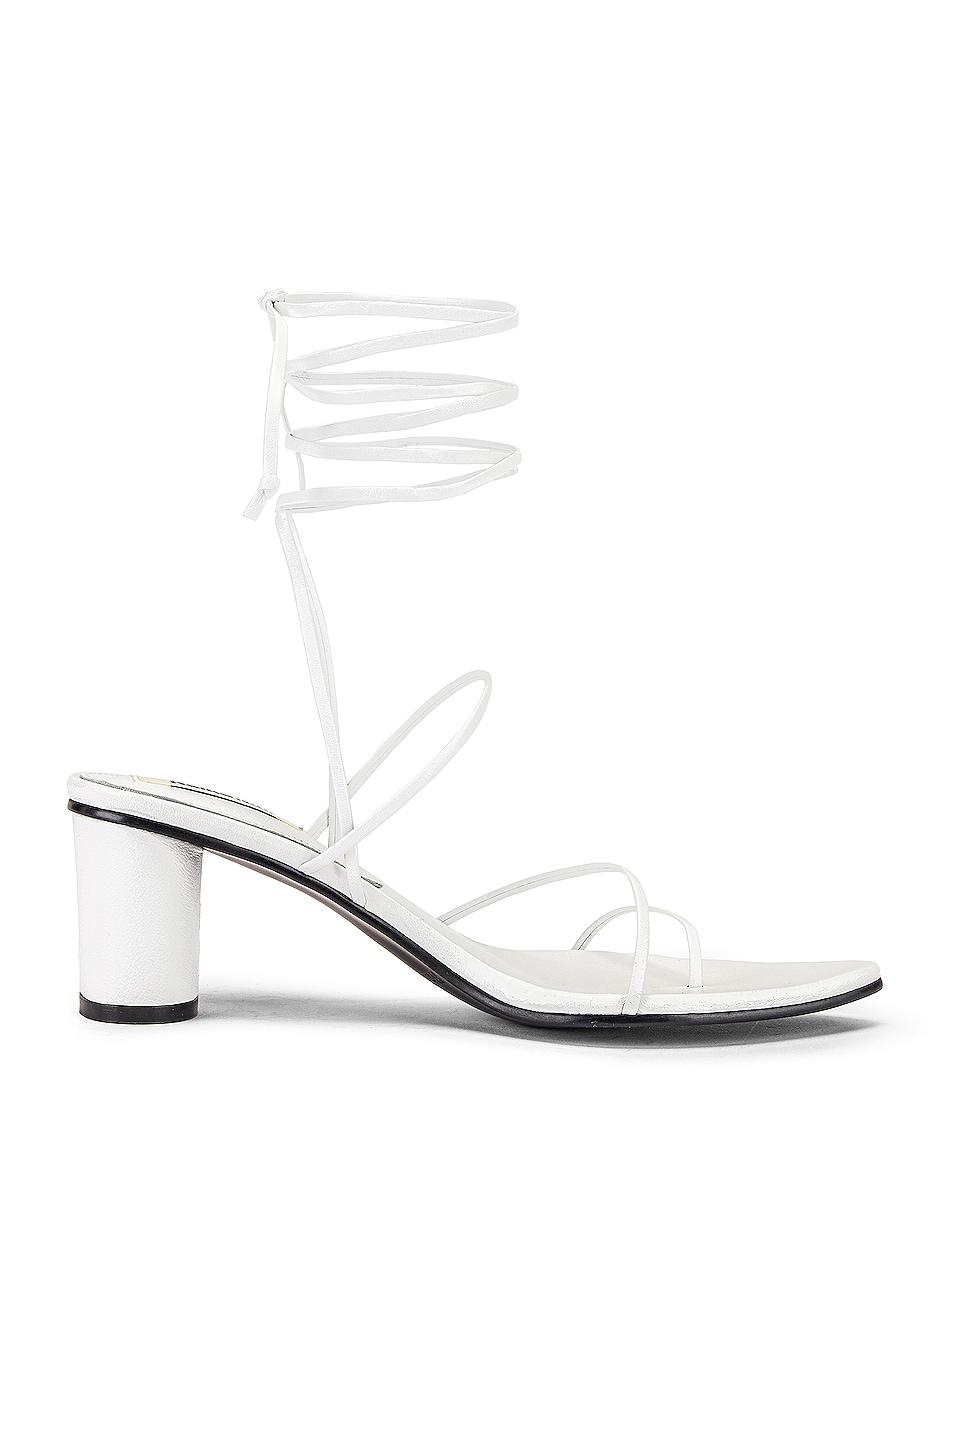 Image 6 of Reike Nen Odd Pair Heels in White